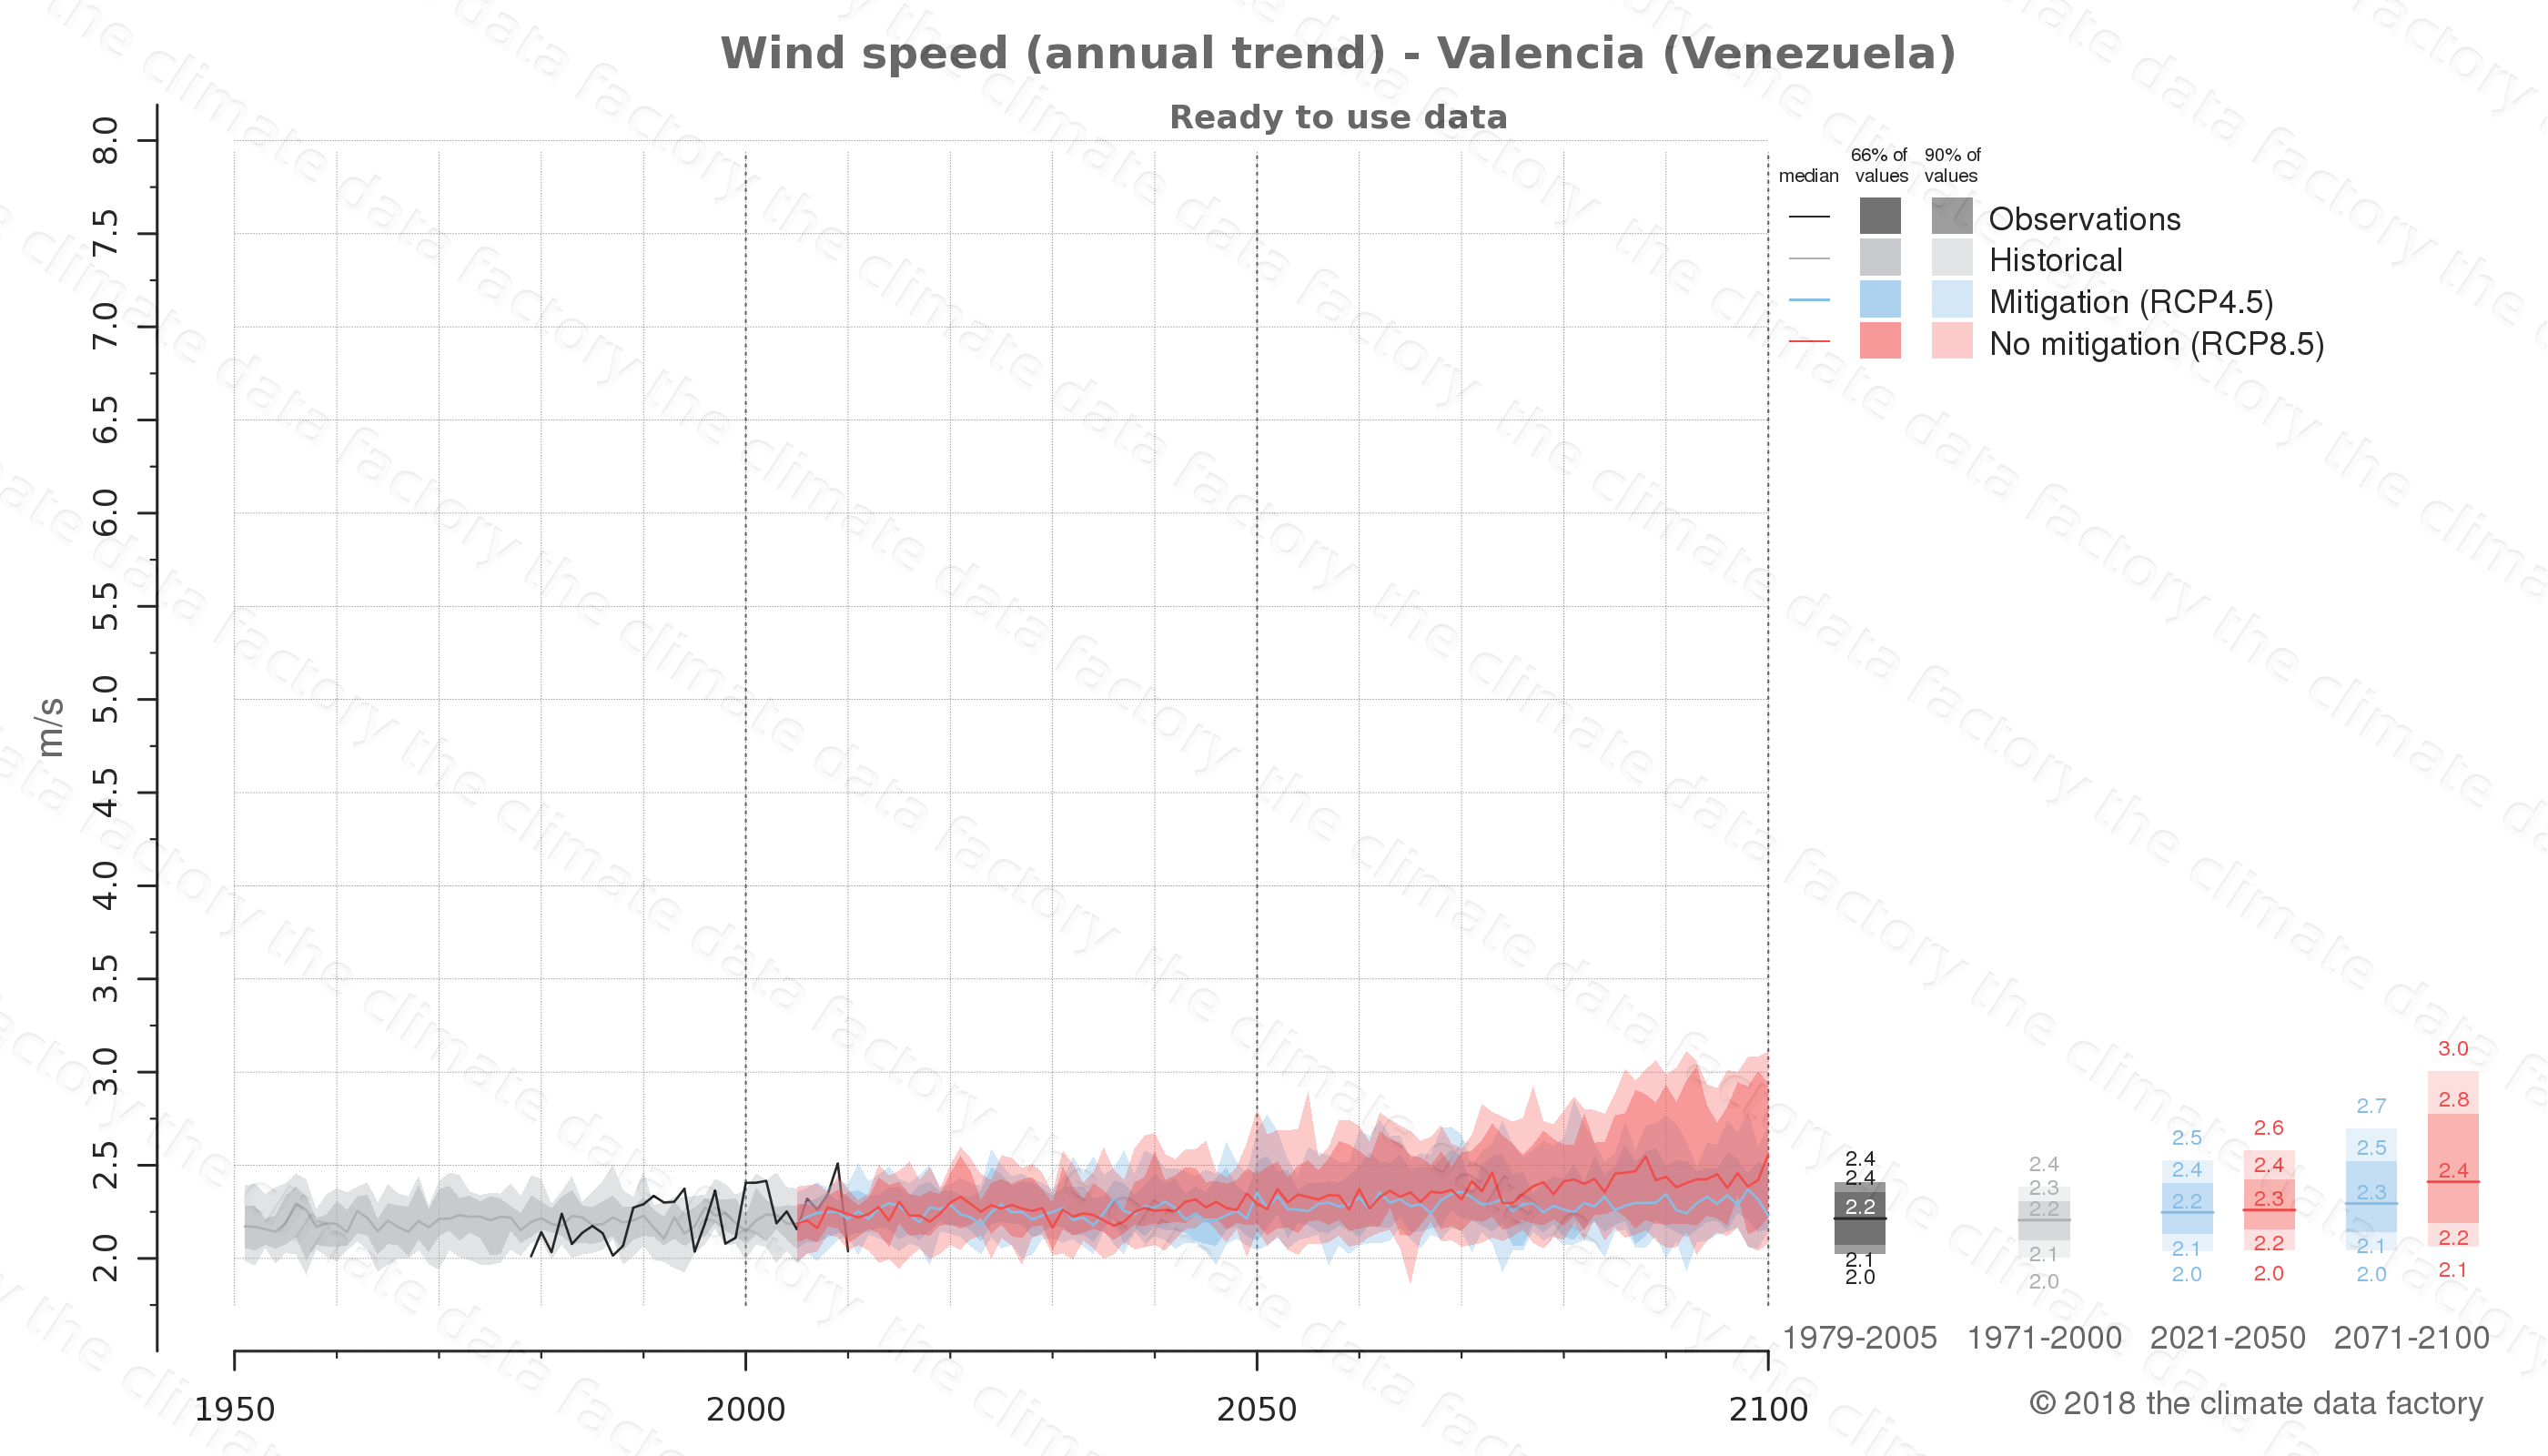 climate change data policy adaptation climate graph city data wind-speed valencia venezuela